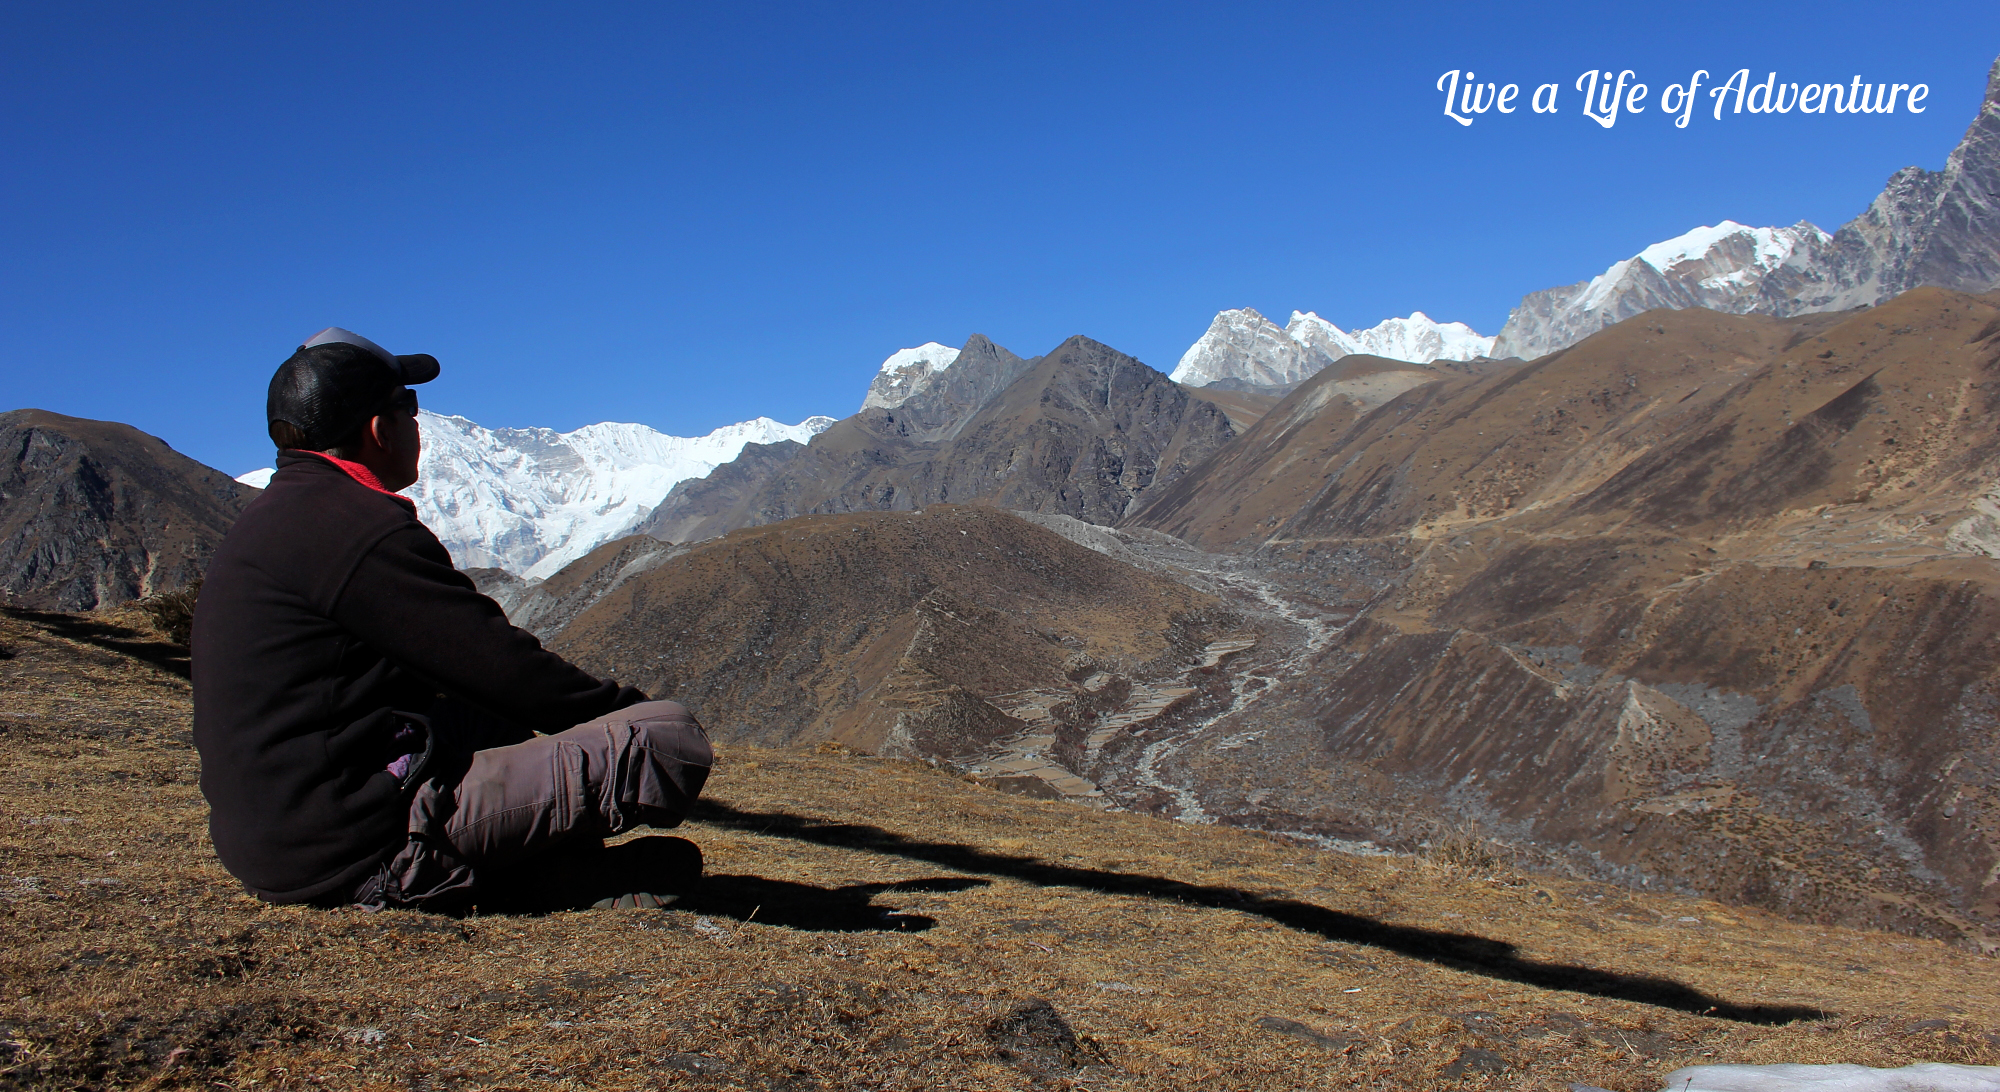 Contemplating life at 4500m in Machhermo, Nepal